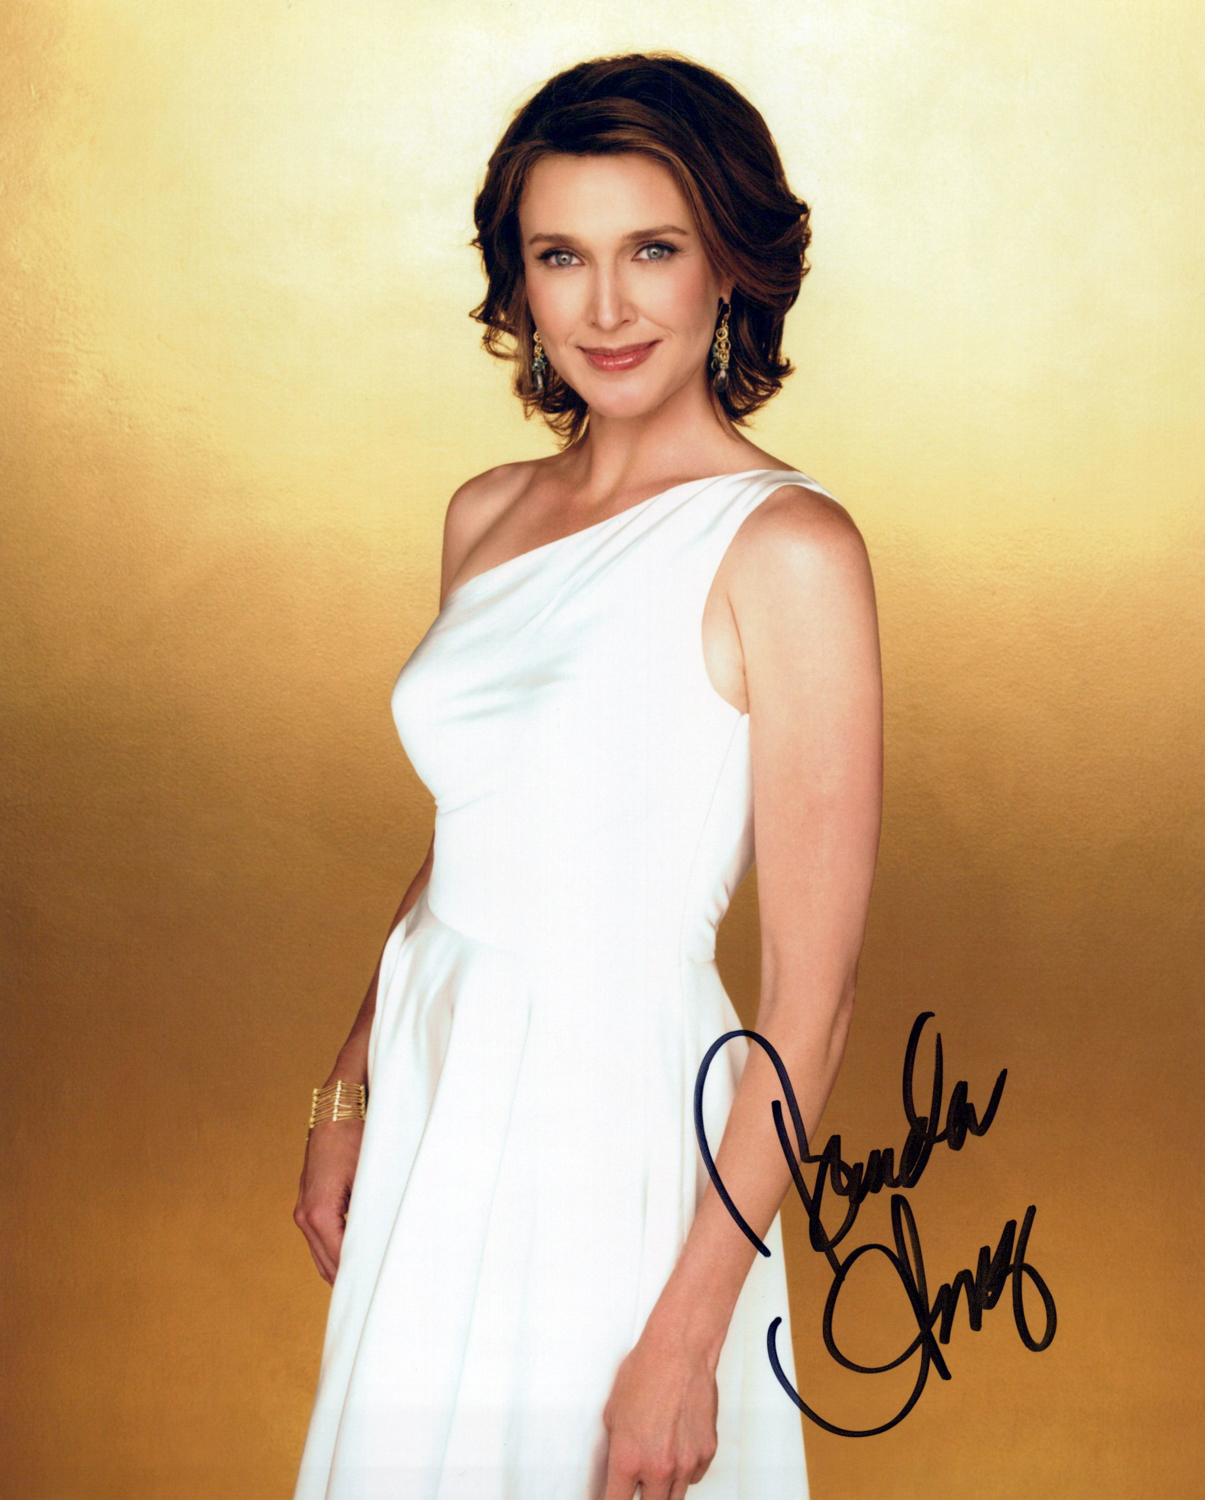 Brenda Strong Original Autogramm auf Foto 20x25cm - Dallas